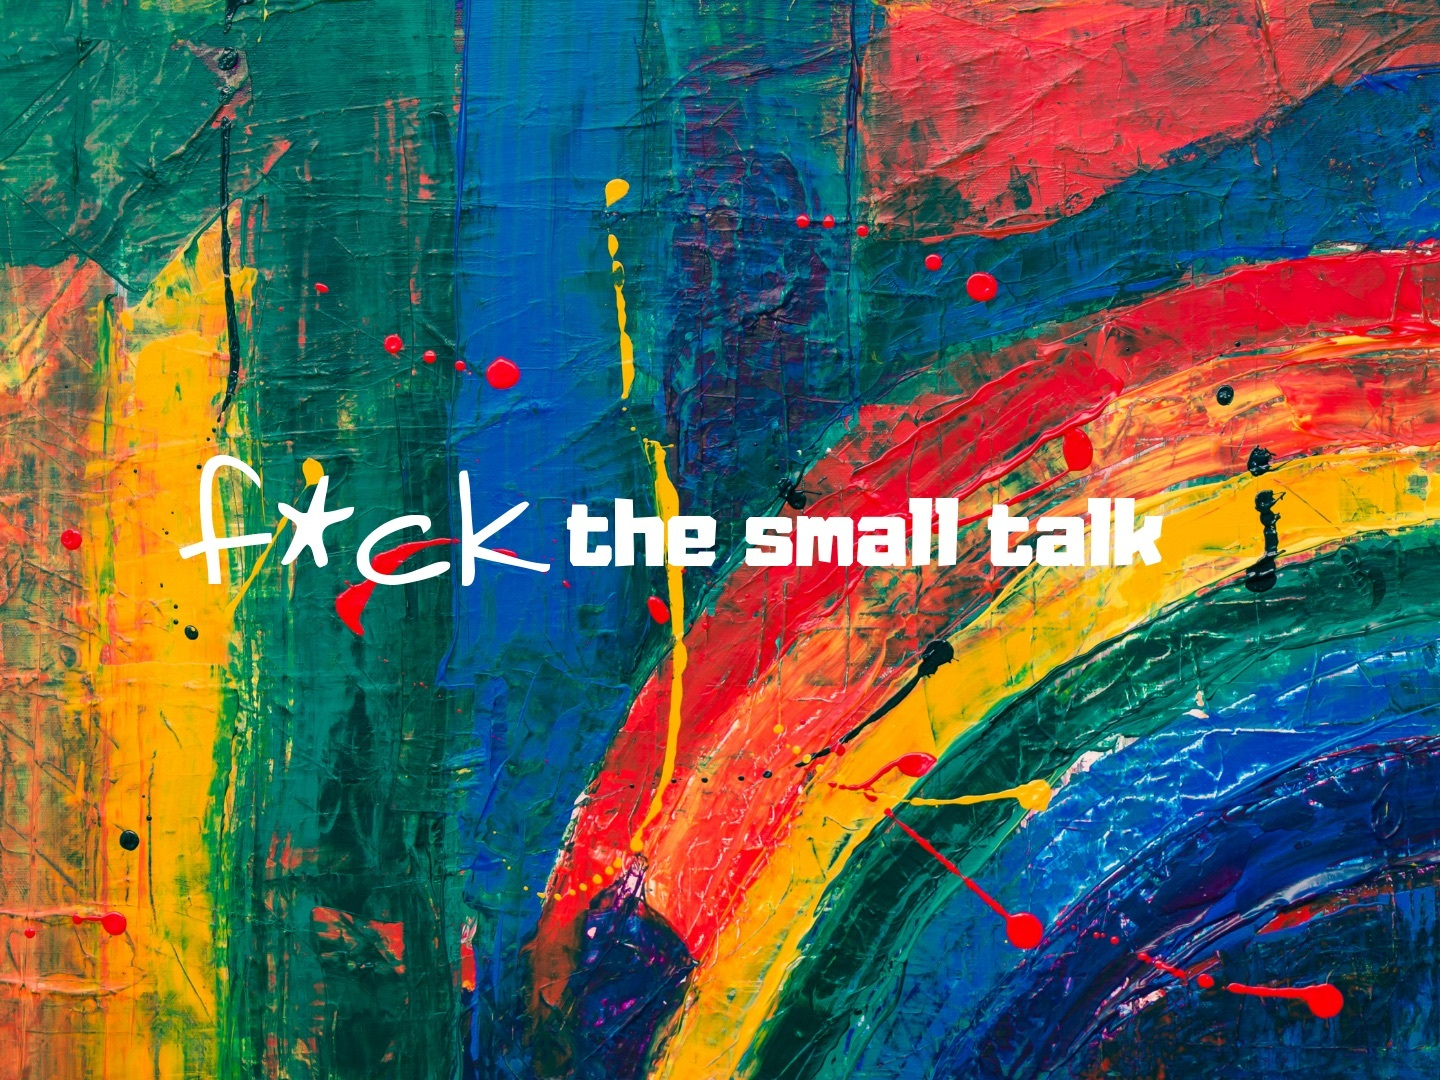 F*ck the Small Talk - Come curious, leave connected.